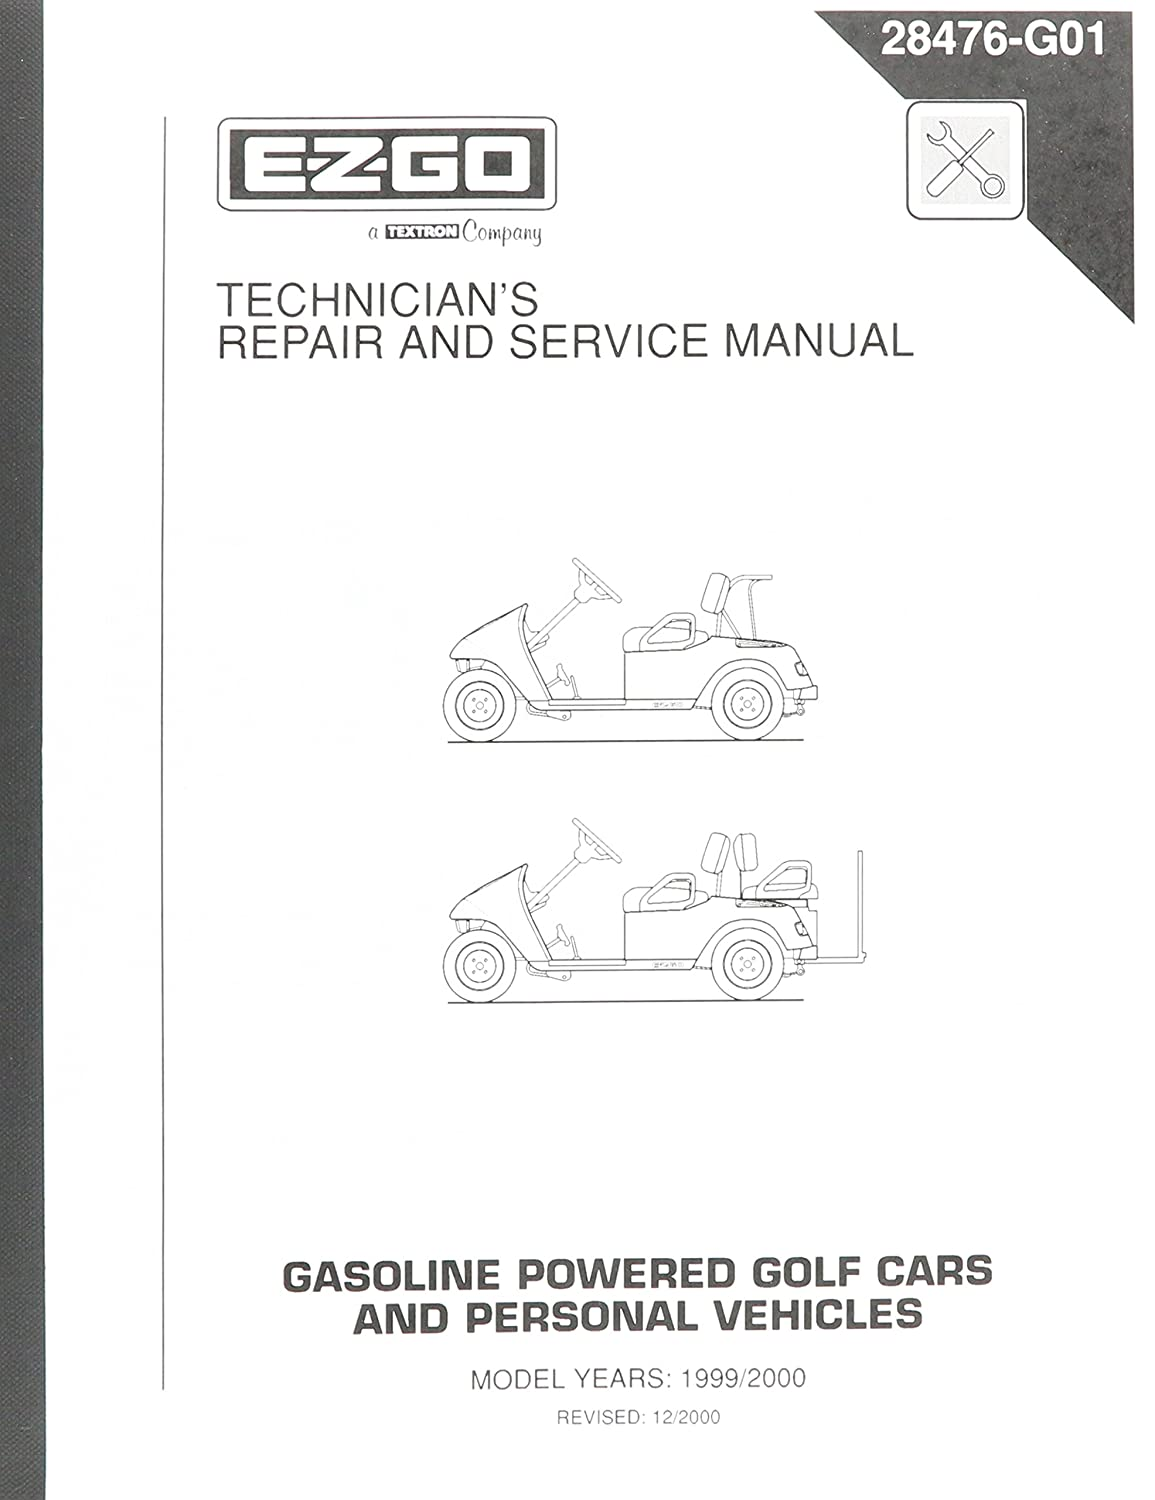 Amazon.com : EZGO 28476G01 1999-2000 Technician's Repair and Service Manual  for Gas TXT Golf Cars/Personal Vehicles : Outdoor Decorative Fences :  Garden & ...